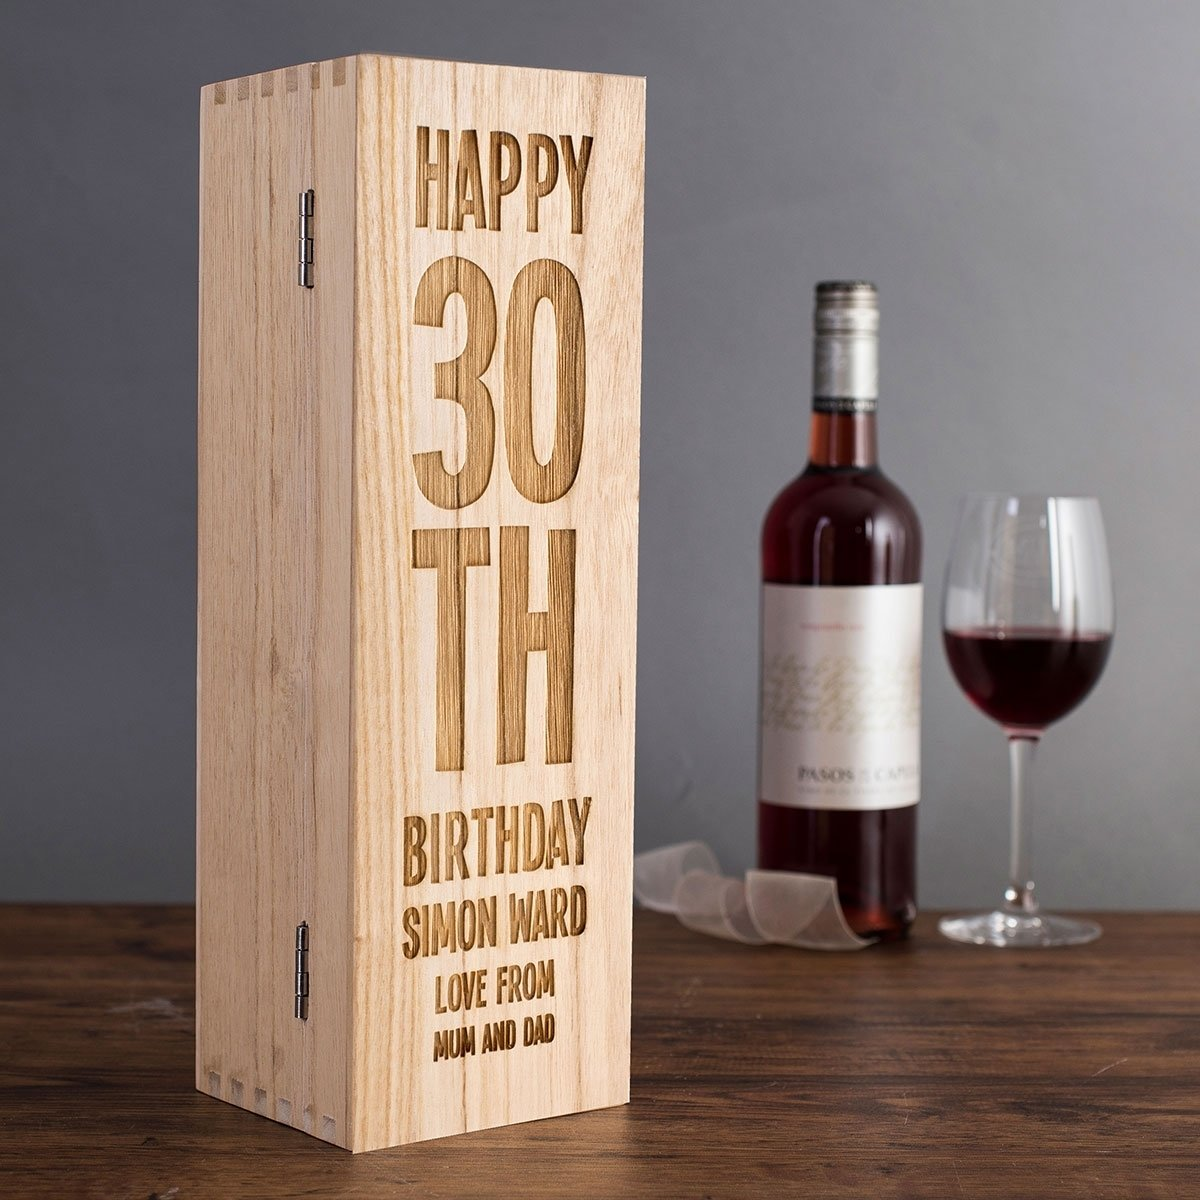 10 Awesome 30Th Birthday Gift Ideas For Men personalised wooden wine box 30th birthday getting personal